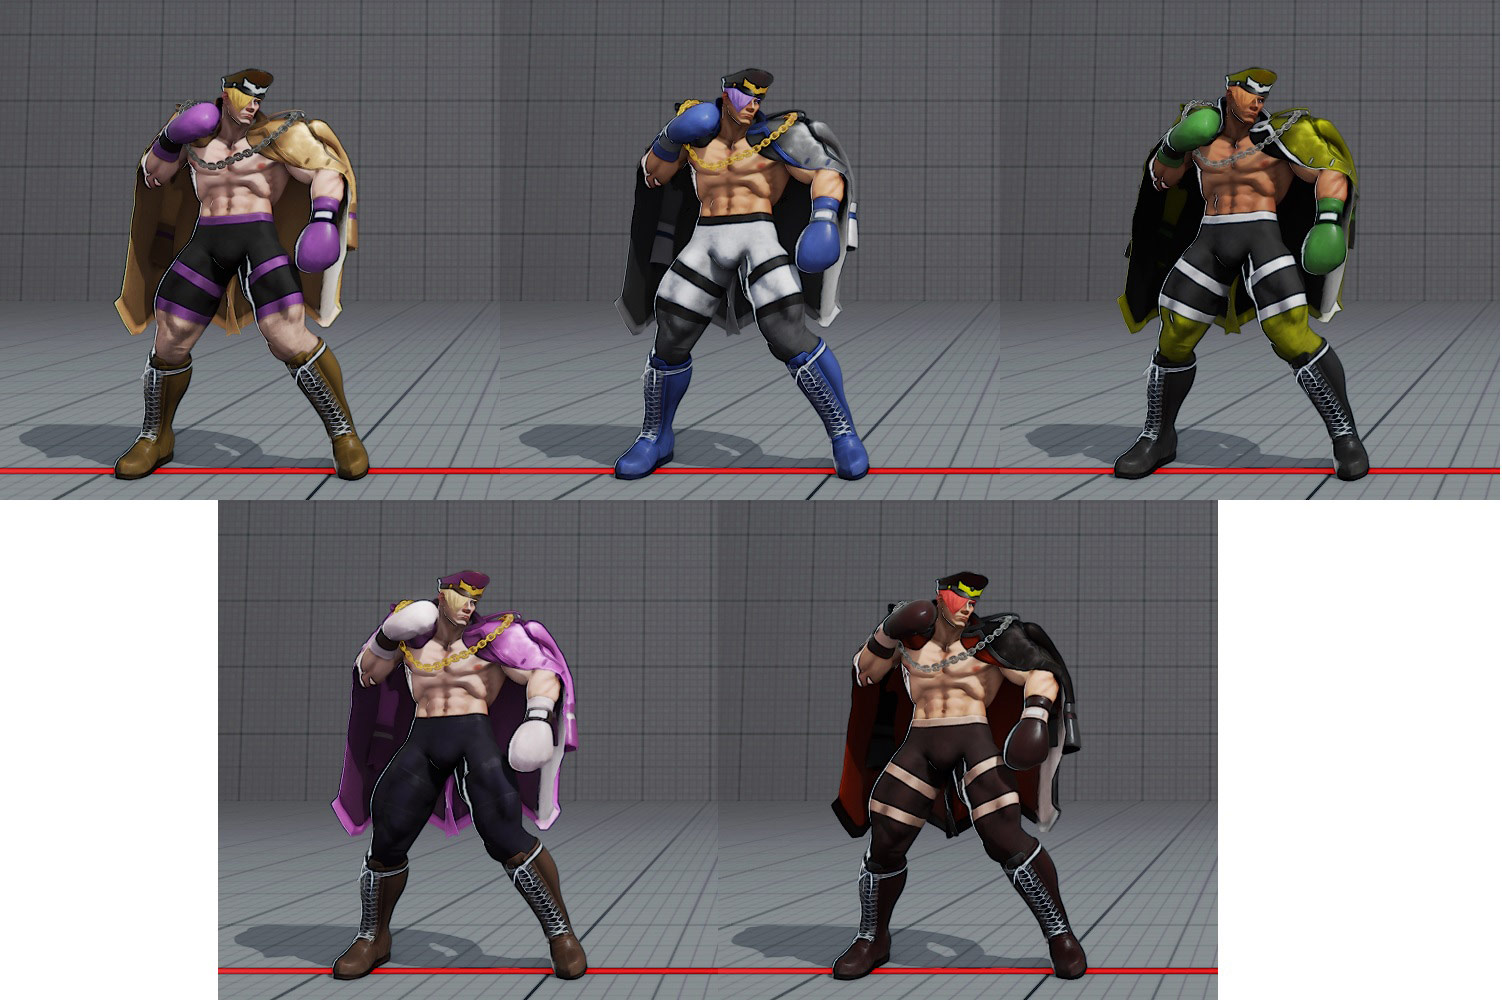 Ed's costumes and colors in Street Fighter 5 6 out of 6 image gallery